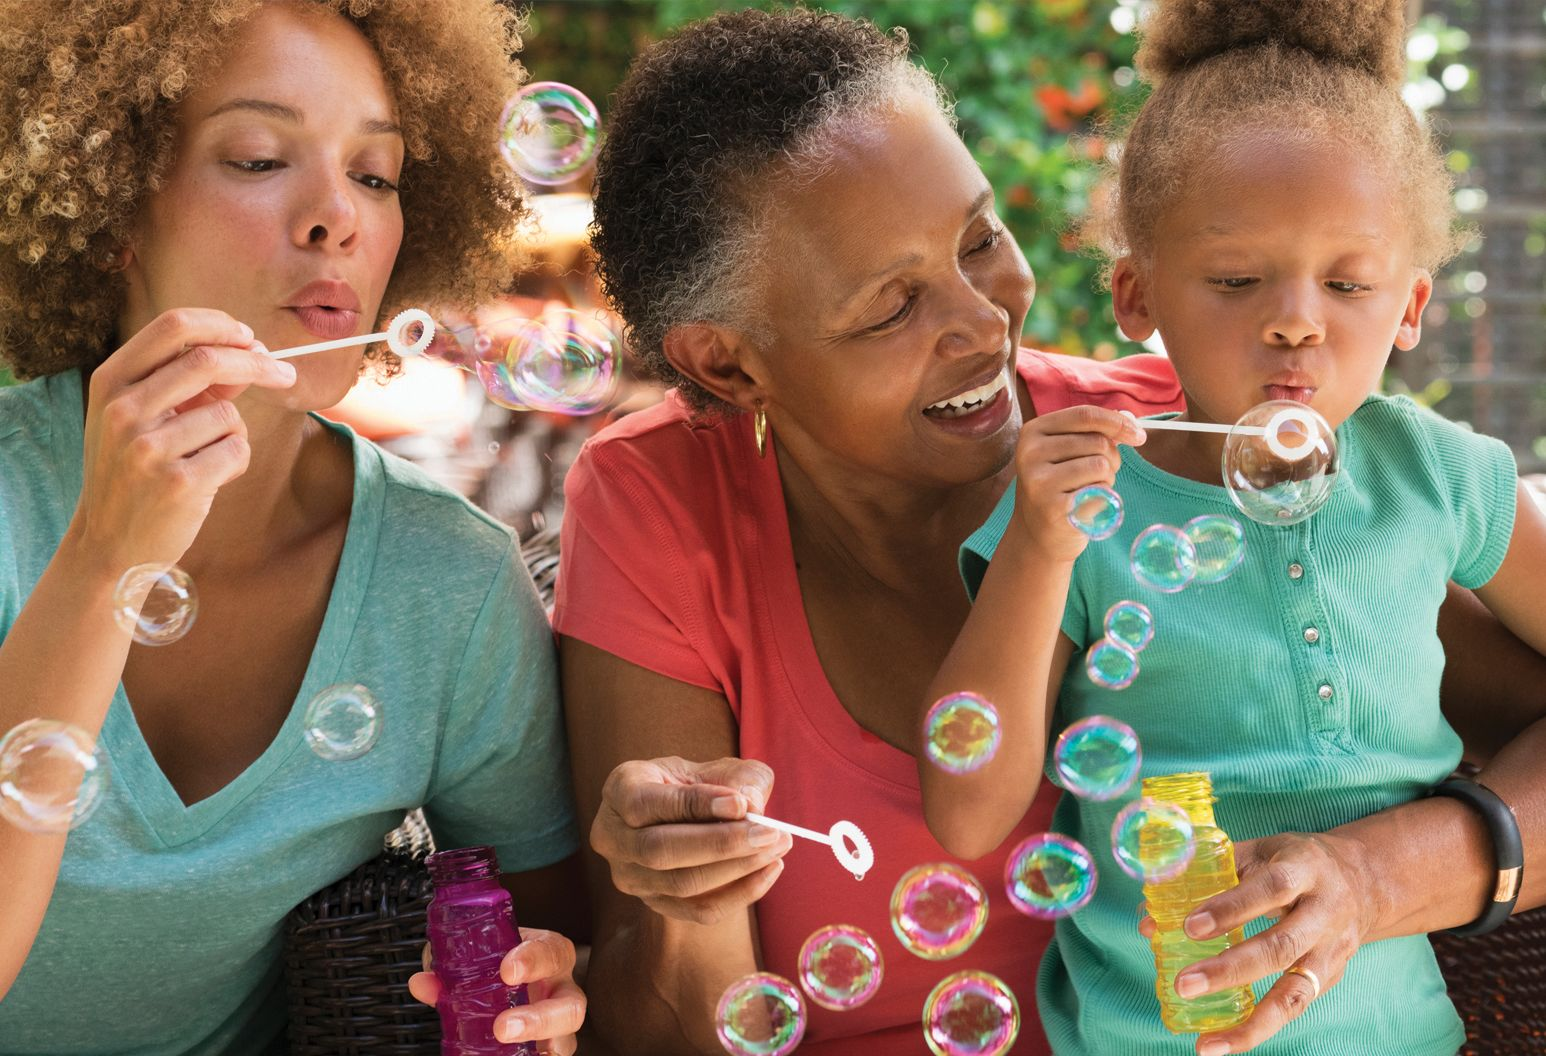 Women of three different generations blowing bubbles outside.